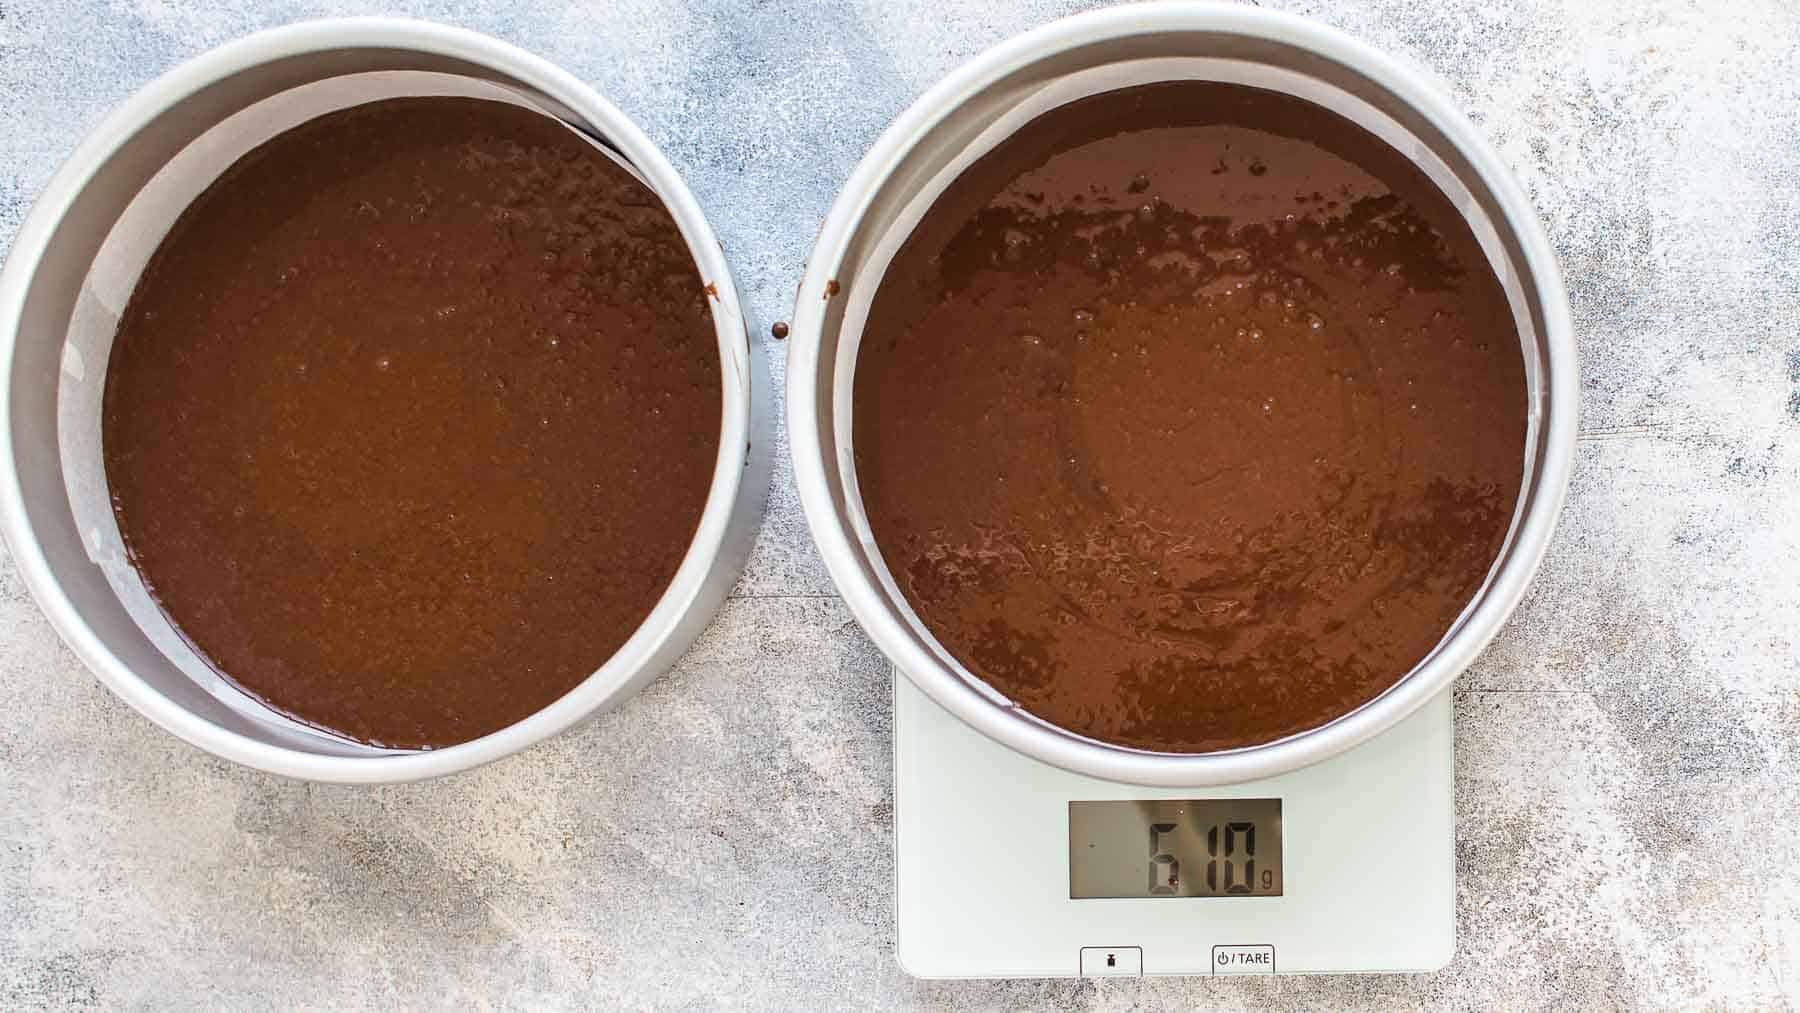 Measuring the chocolate cake batter on kitchen scale